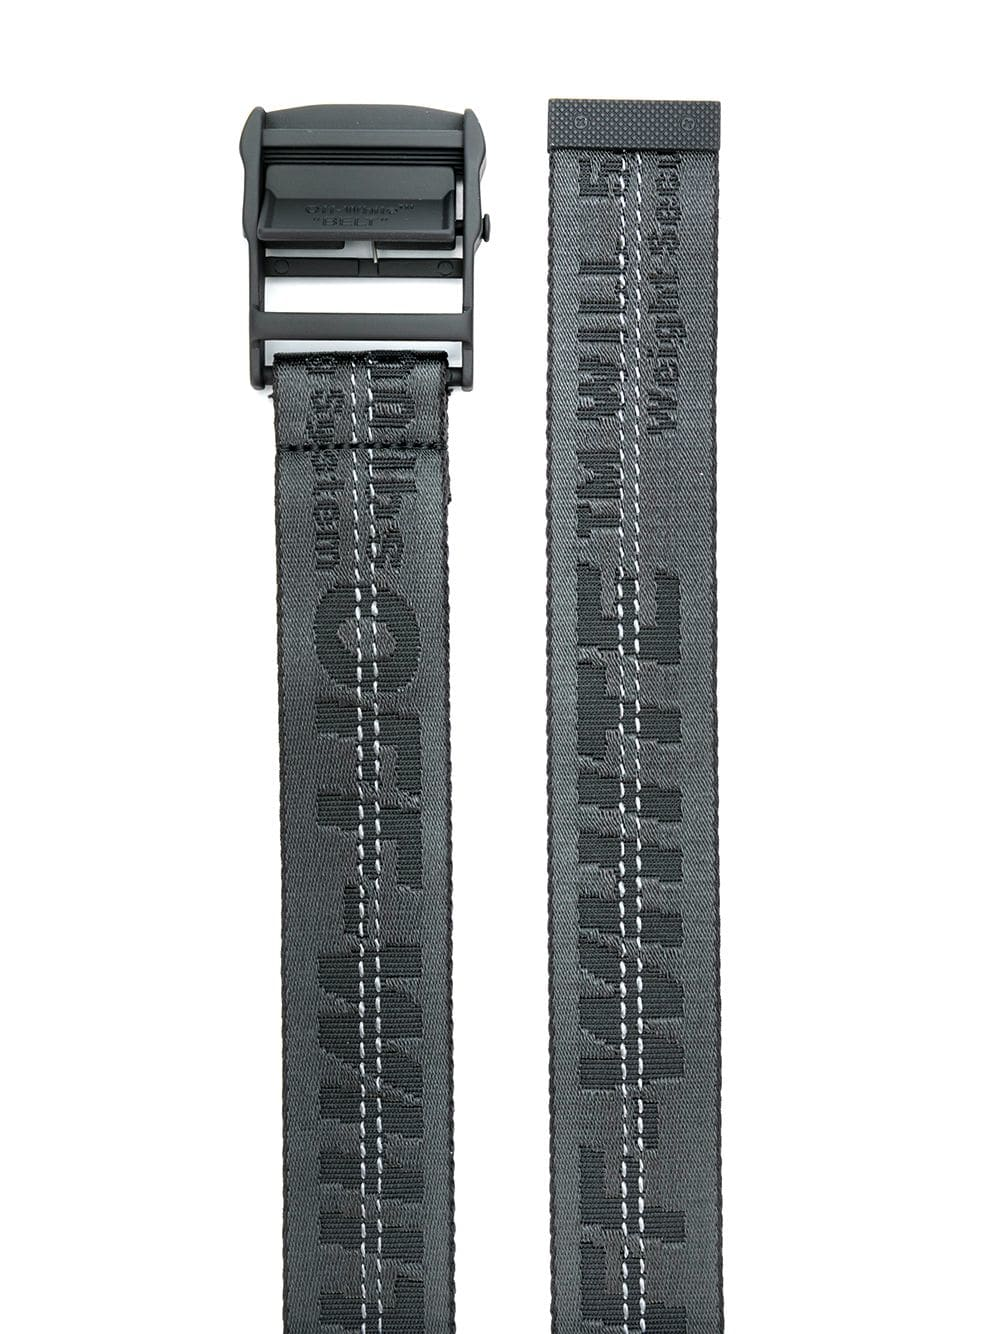 OFF-WHITE Black Industrial Belt - Maison De Fashion